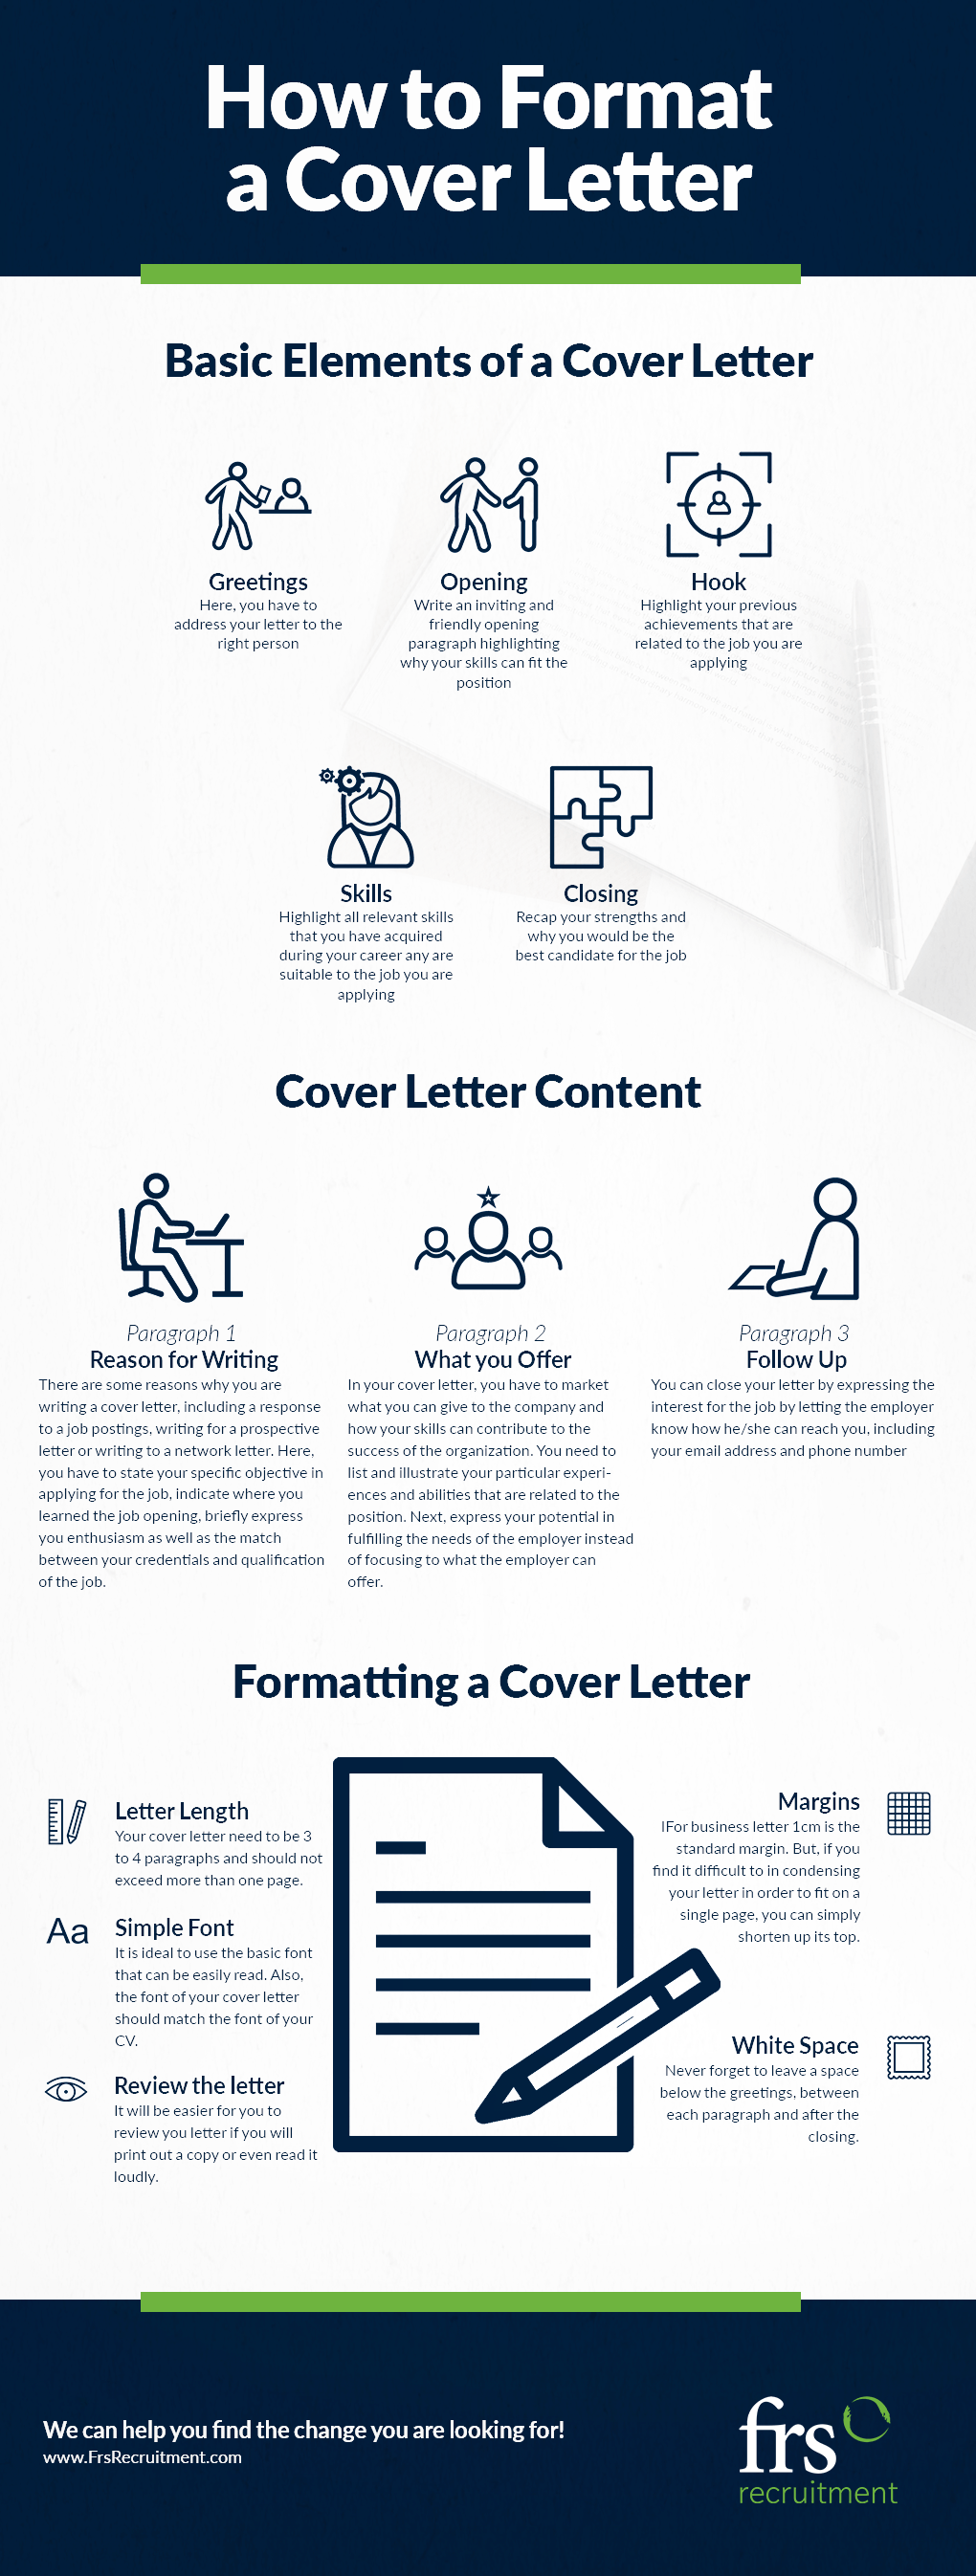 Format For Cover Letter How To Format A Cover Letter Frs Recruitment